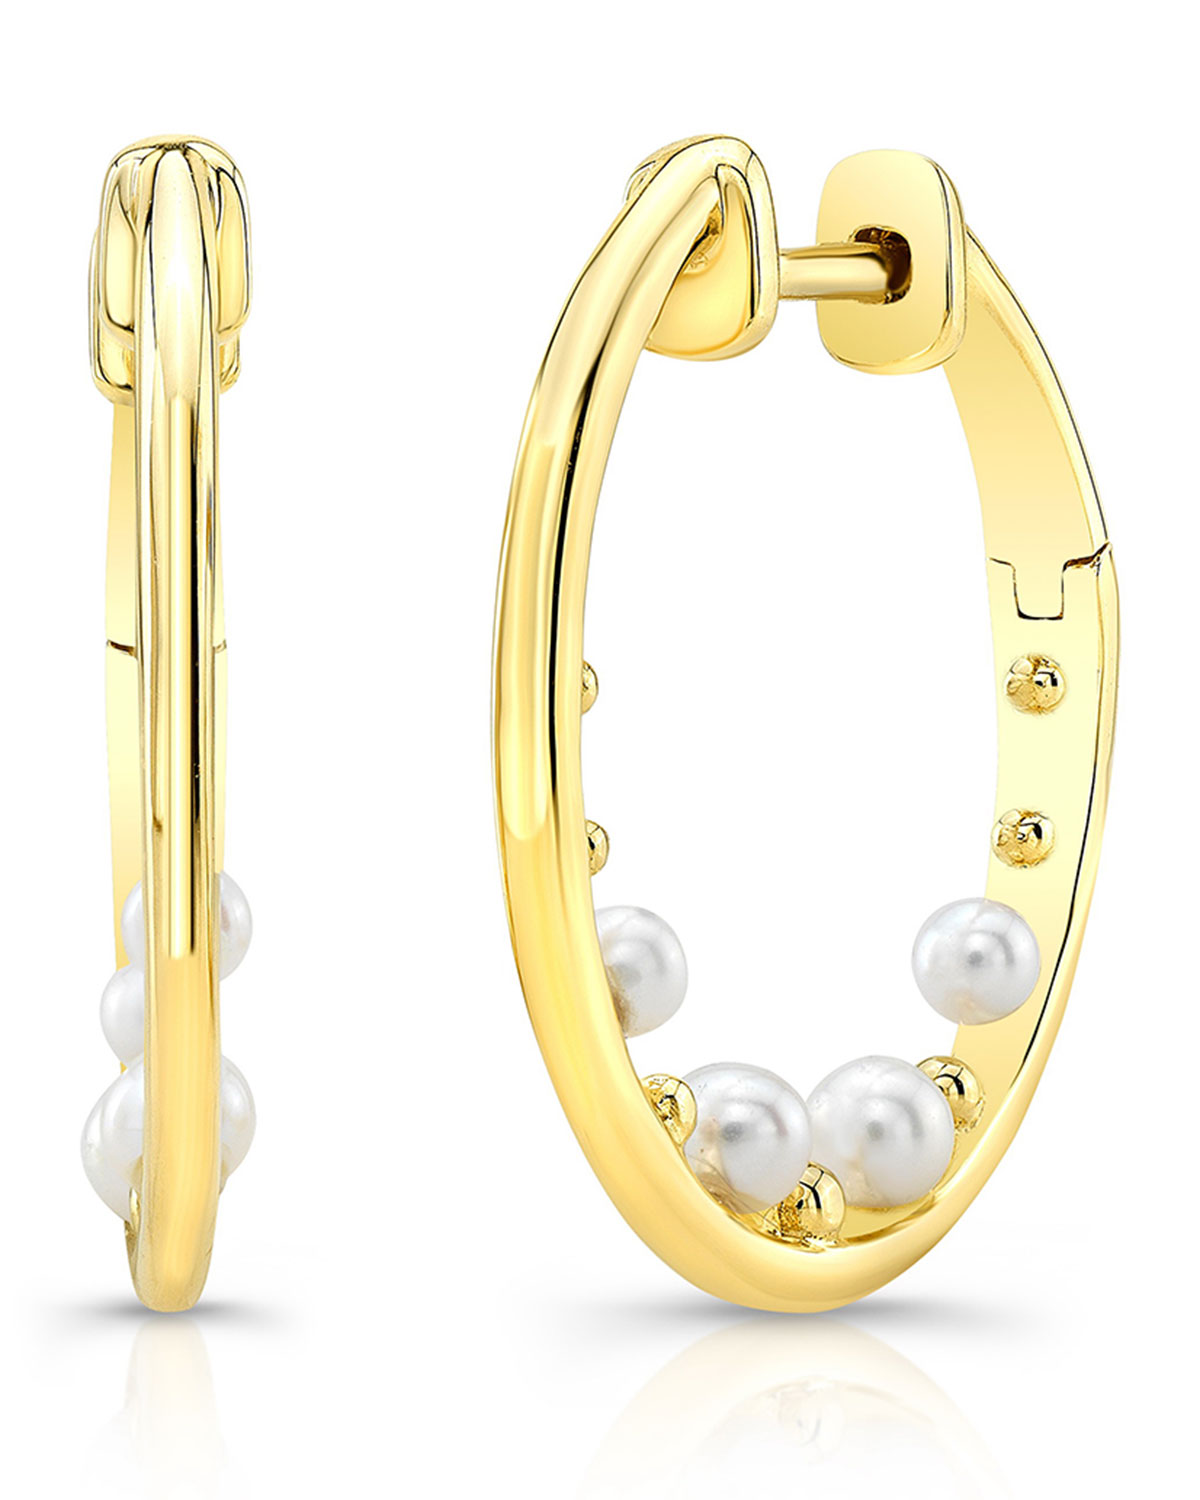 RON HAMI 14K Pearl & Bubble Hoop Earrings